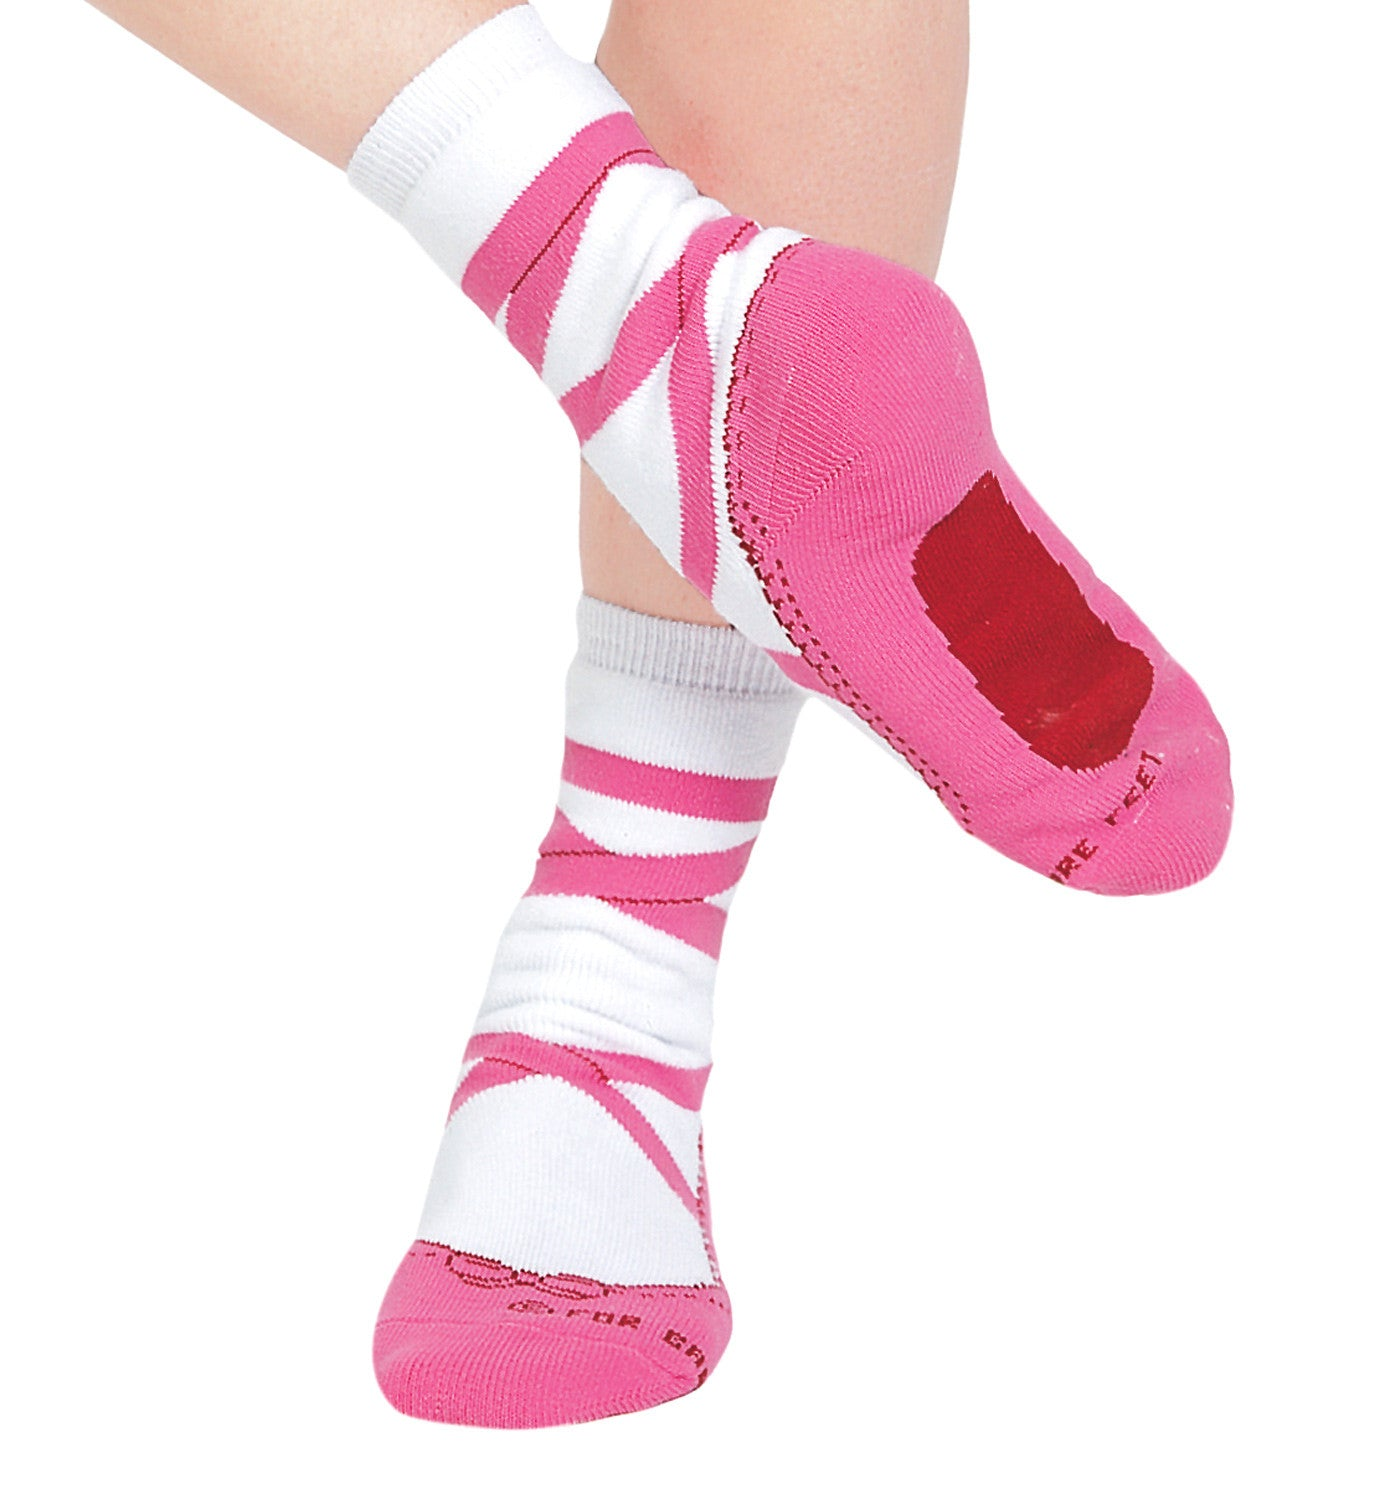 For Bare Feet Adult Pointe Shoe Socks for Women